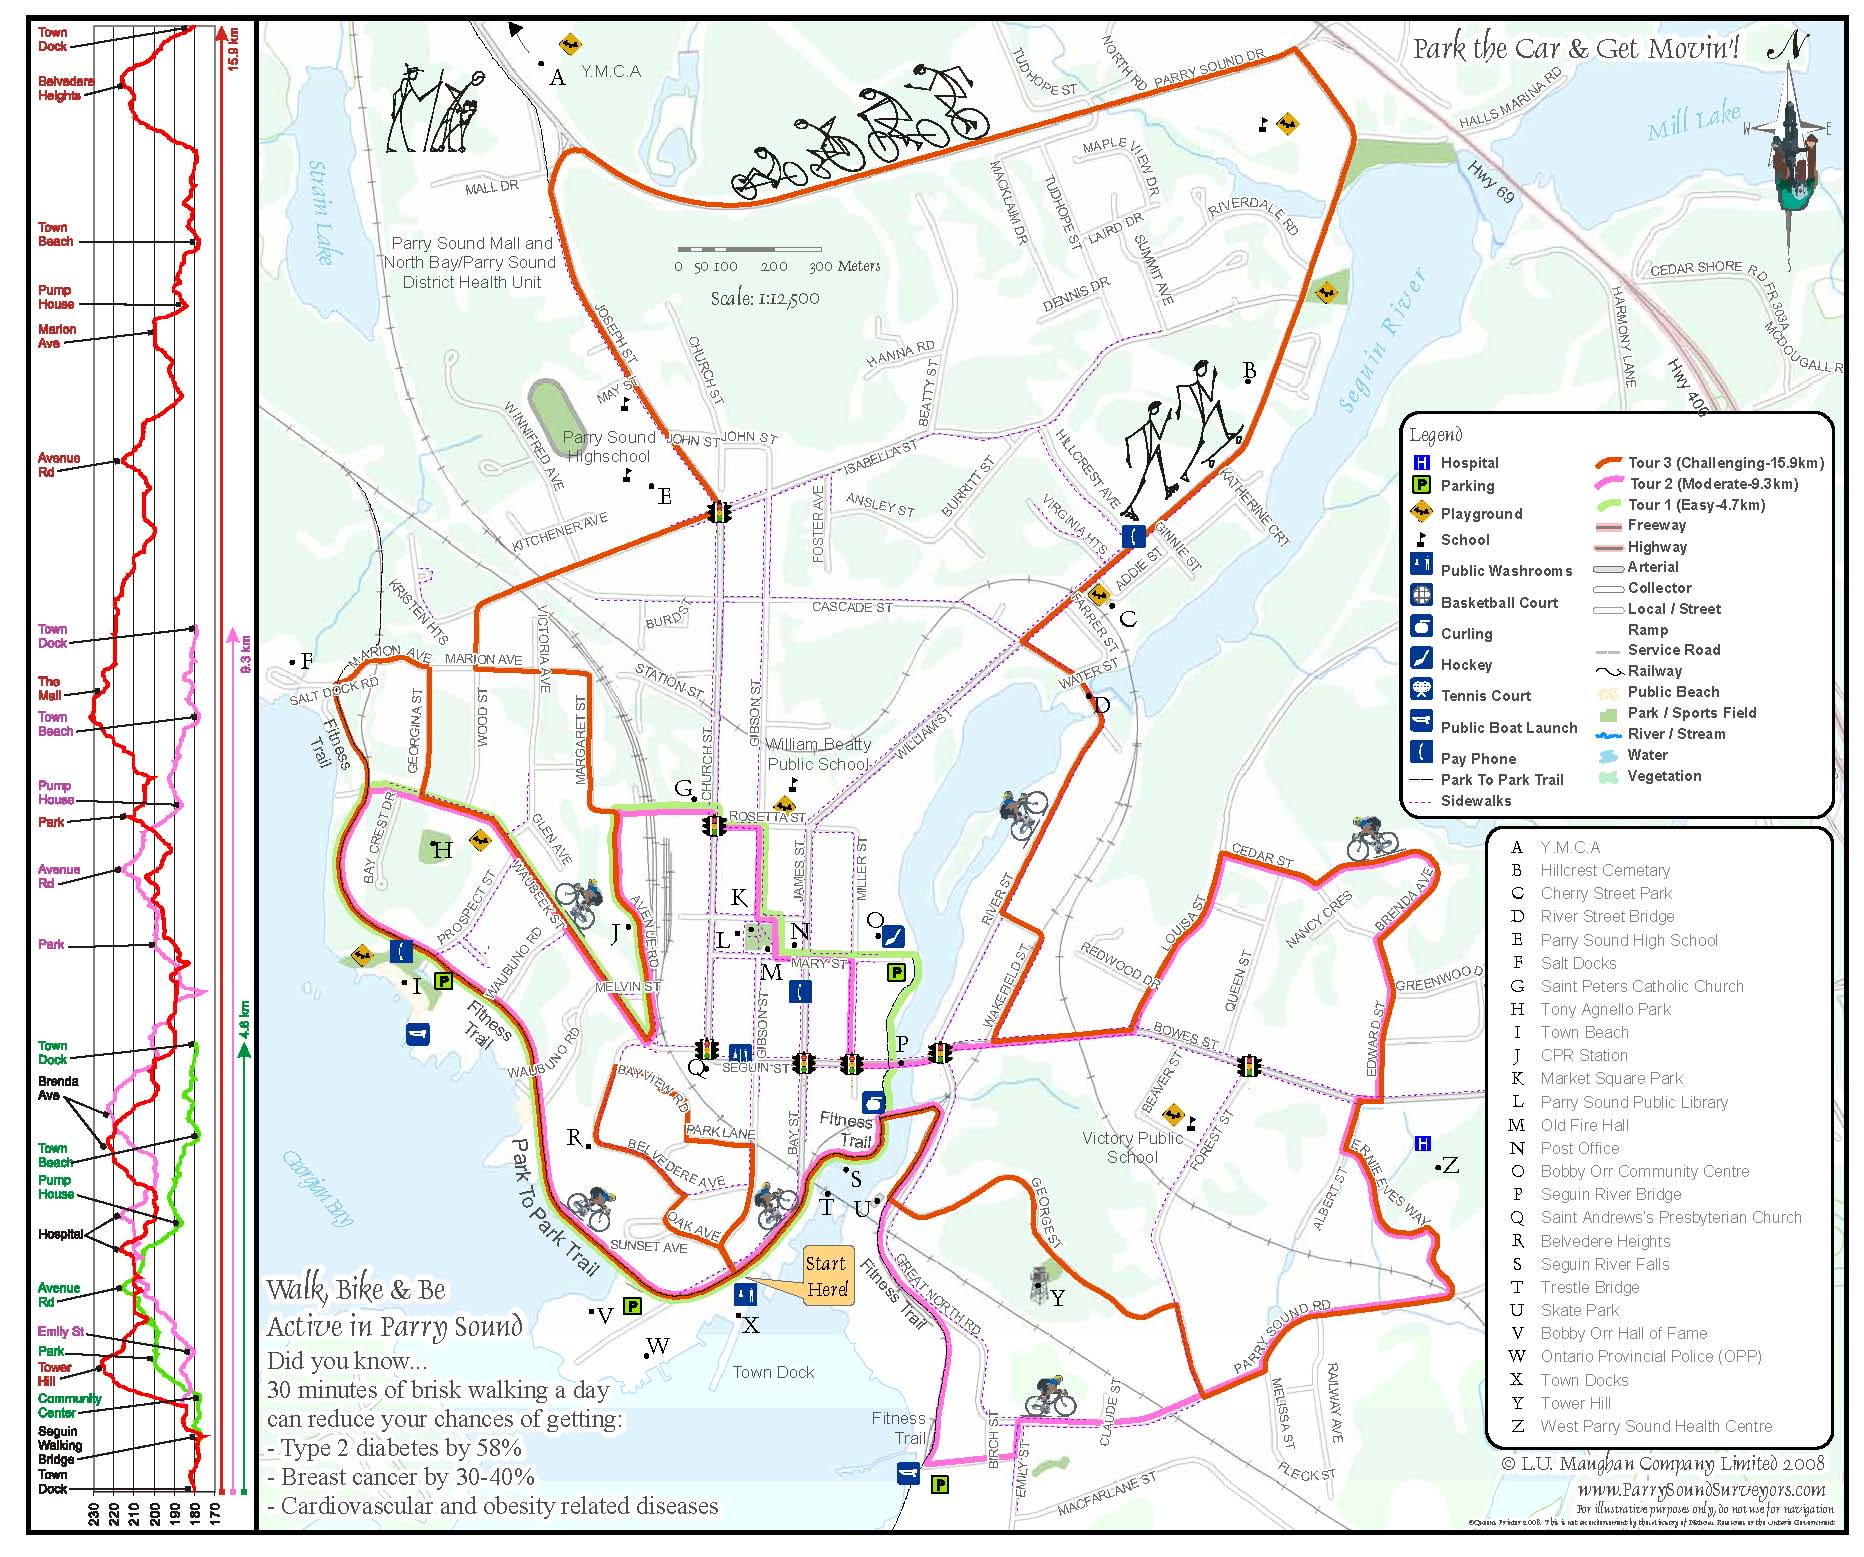 A map of biking and walking routes in Parry Sound